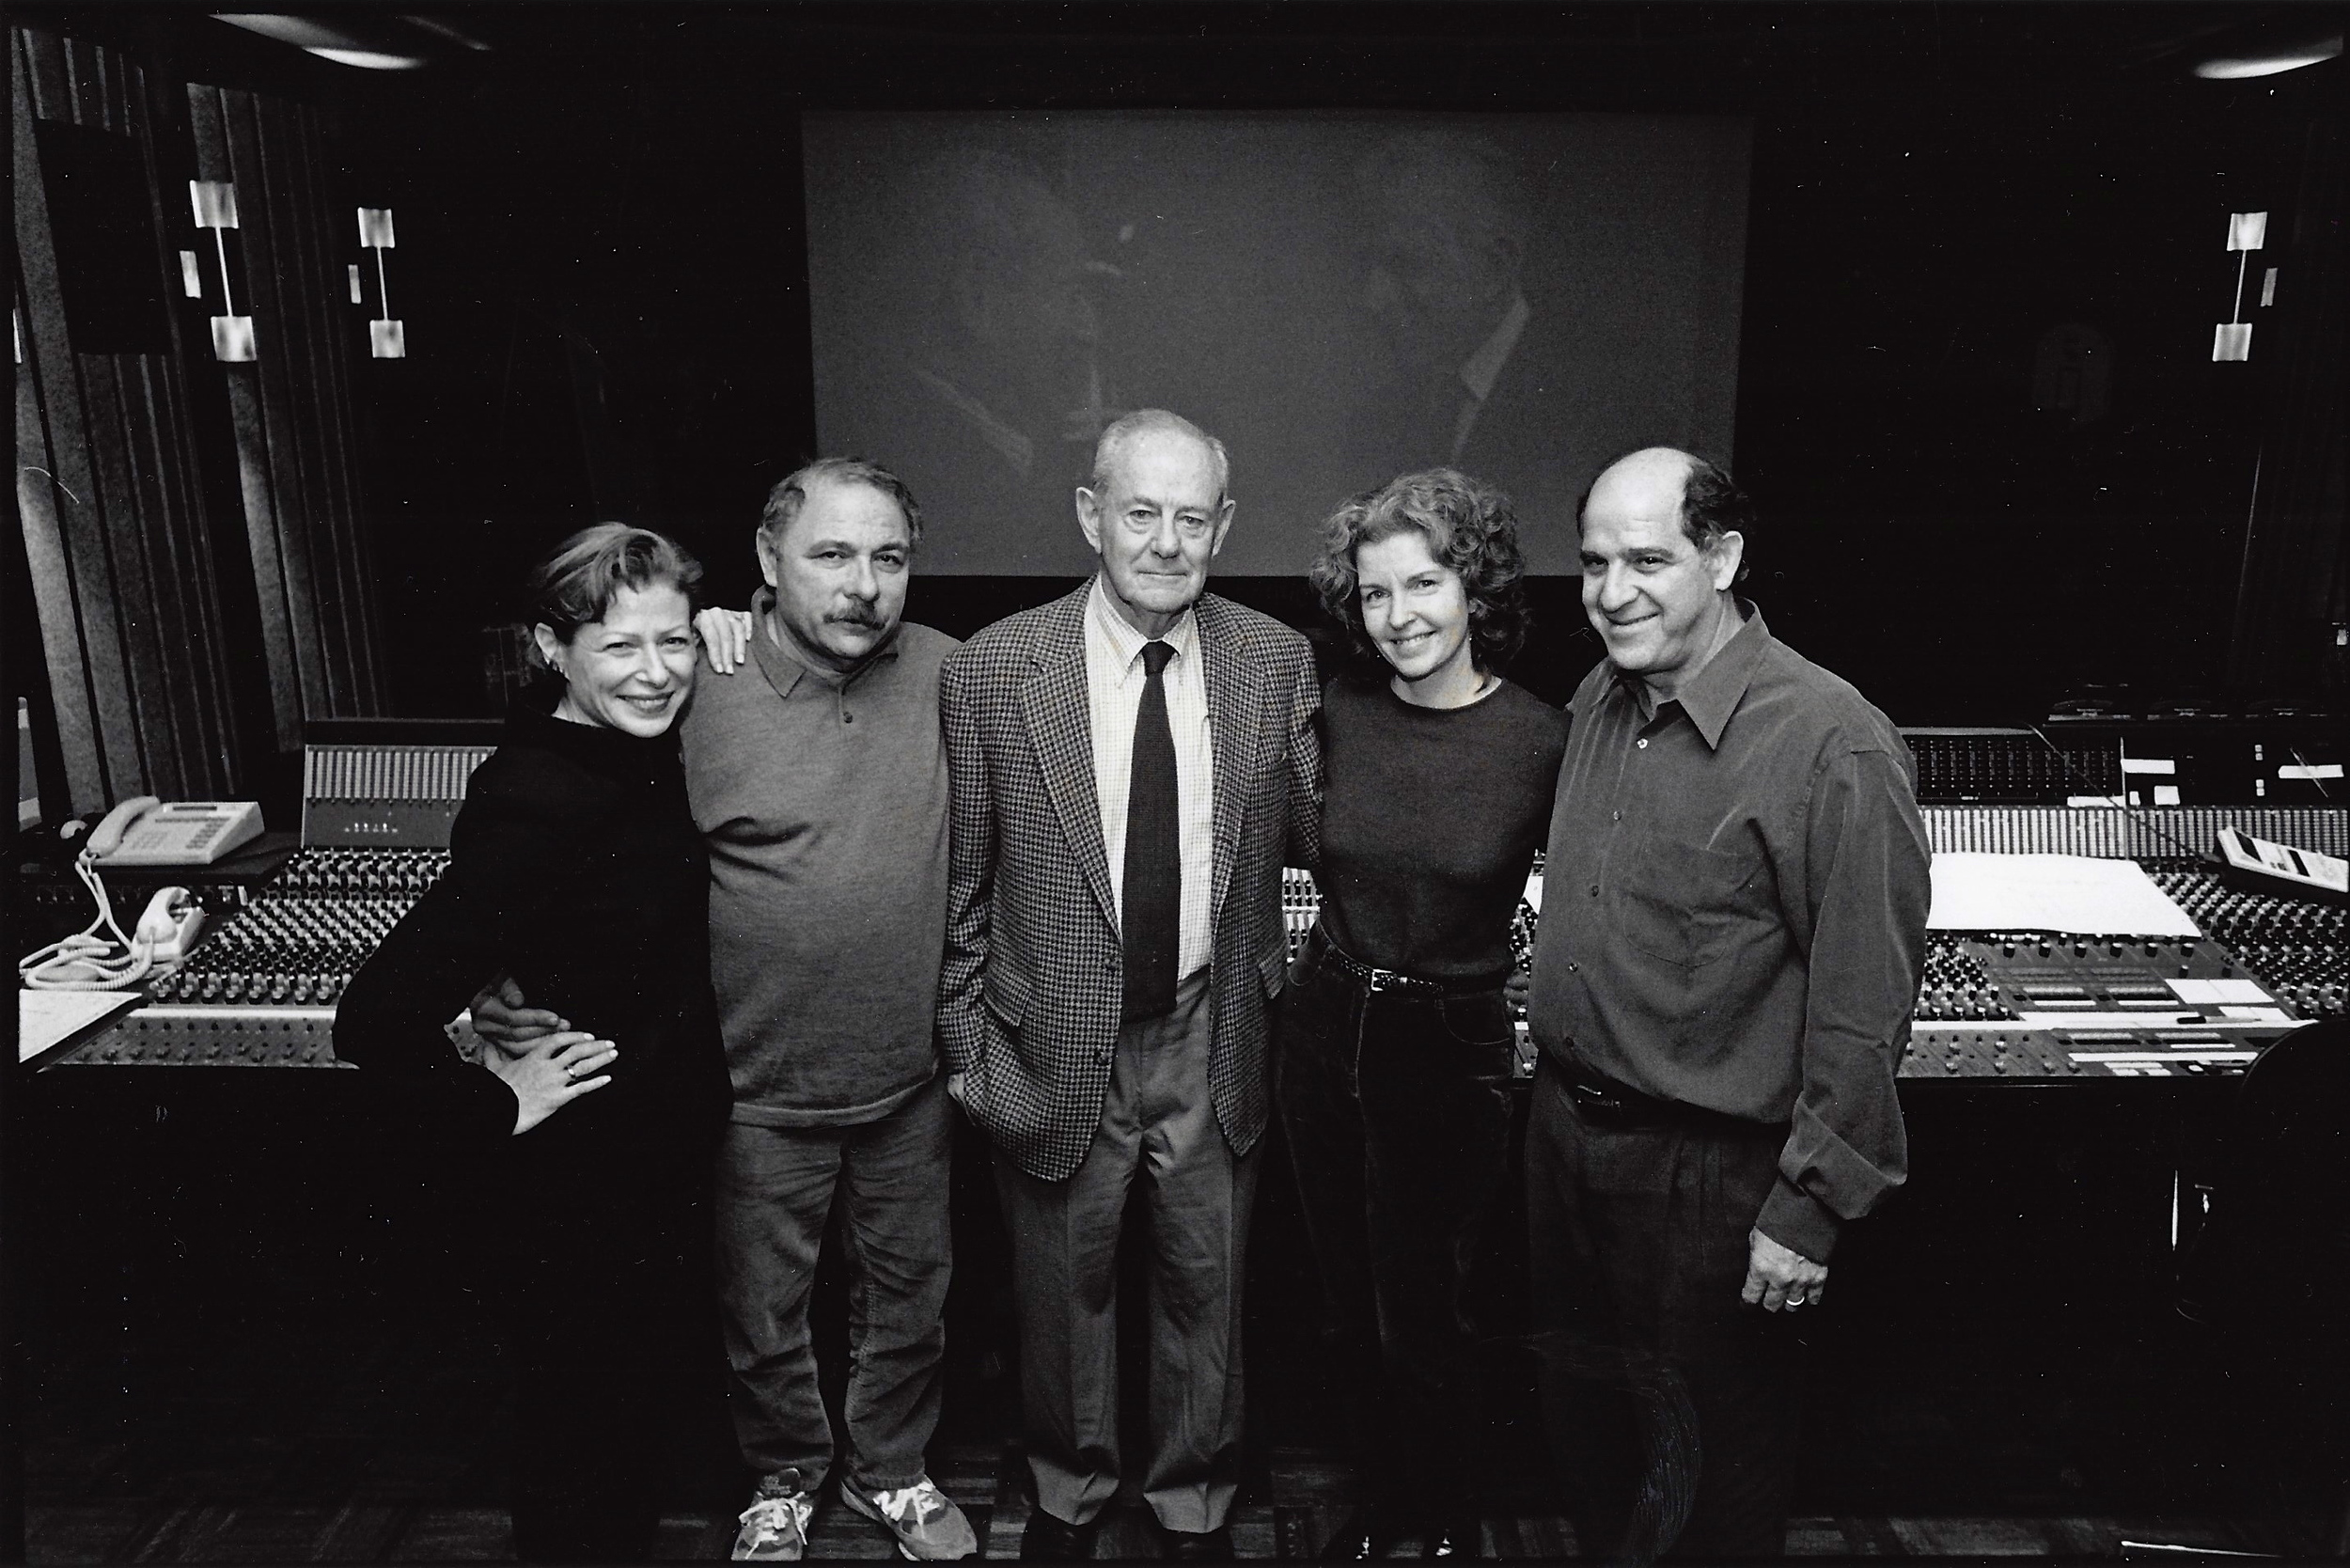 Nina and Walter Rosenblum with sound designer Maurice Schell, dialogue editor Laura Civiello and sound mixer Lee Dichter